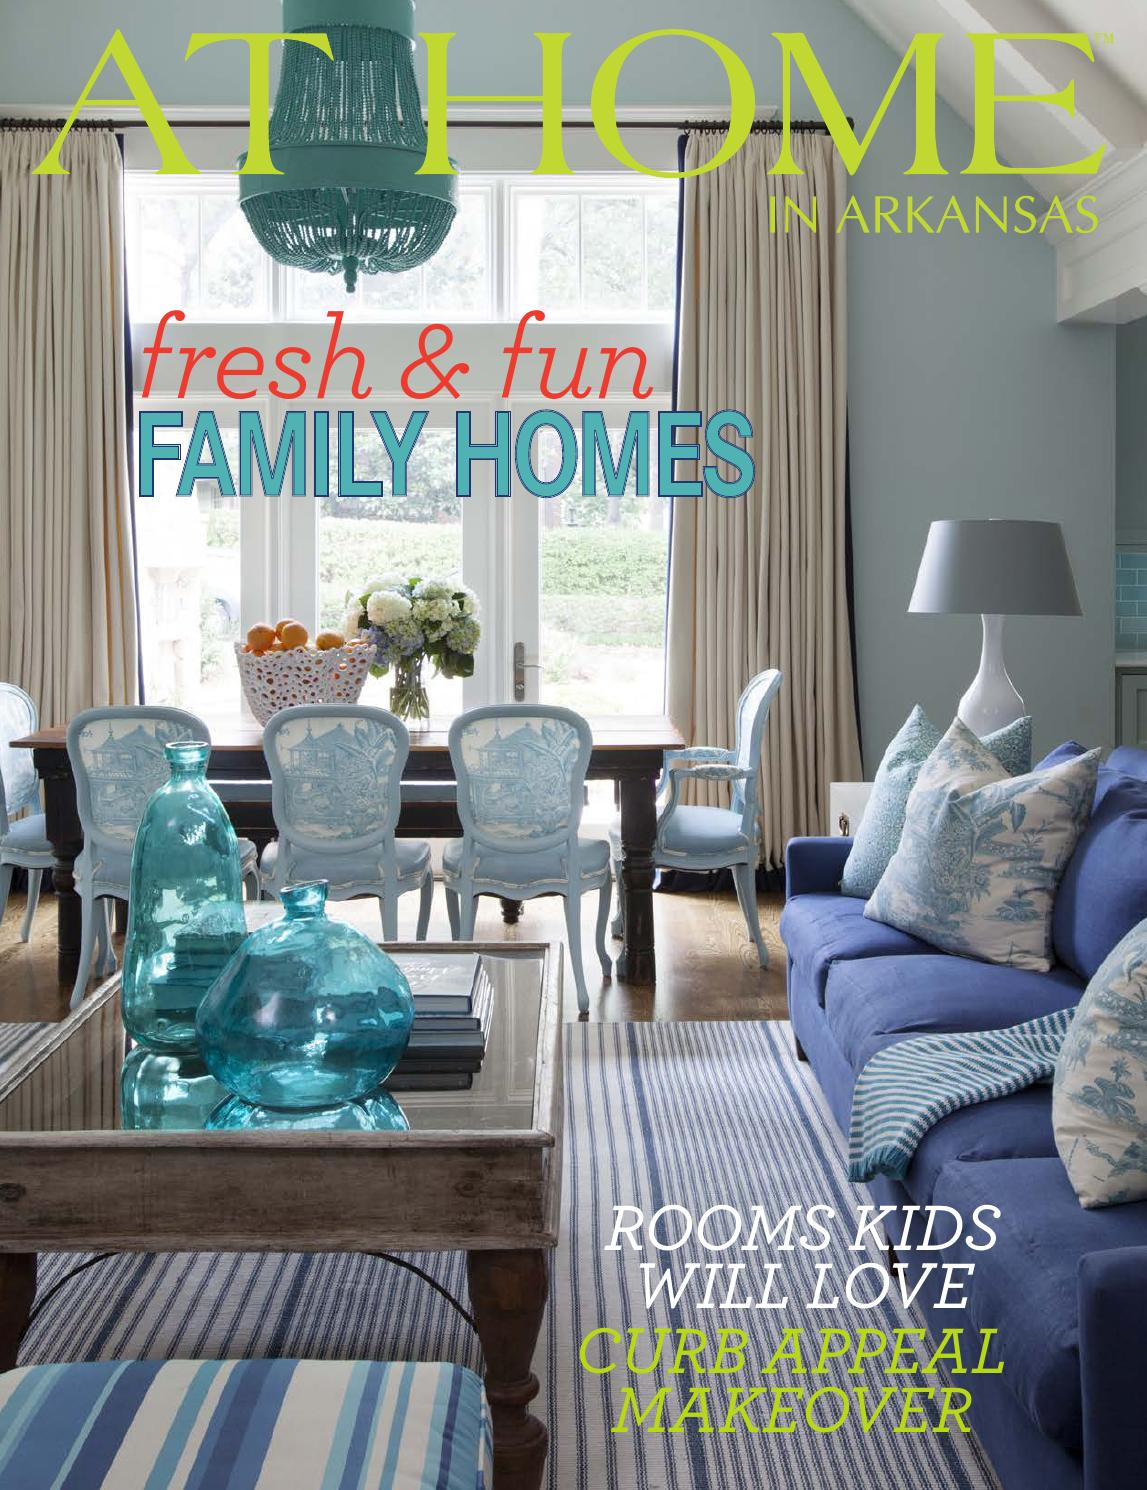 At Home in Arkansas August 2014 by Root Publishing Inc    issuu